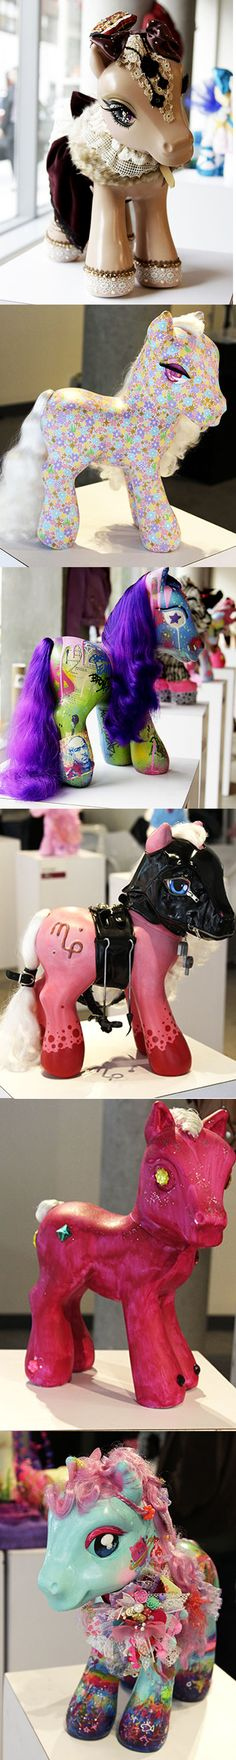 Epic 'My Little Pony' Art Exhibition - I love custom my little ponies. Want to start collecting - if only I had the patience to do some myself!